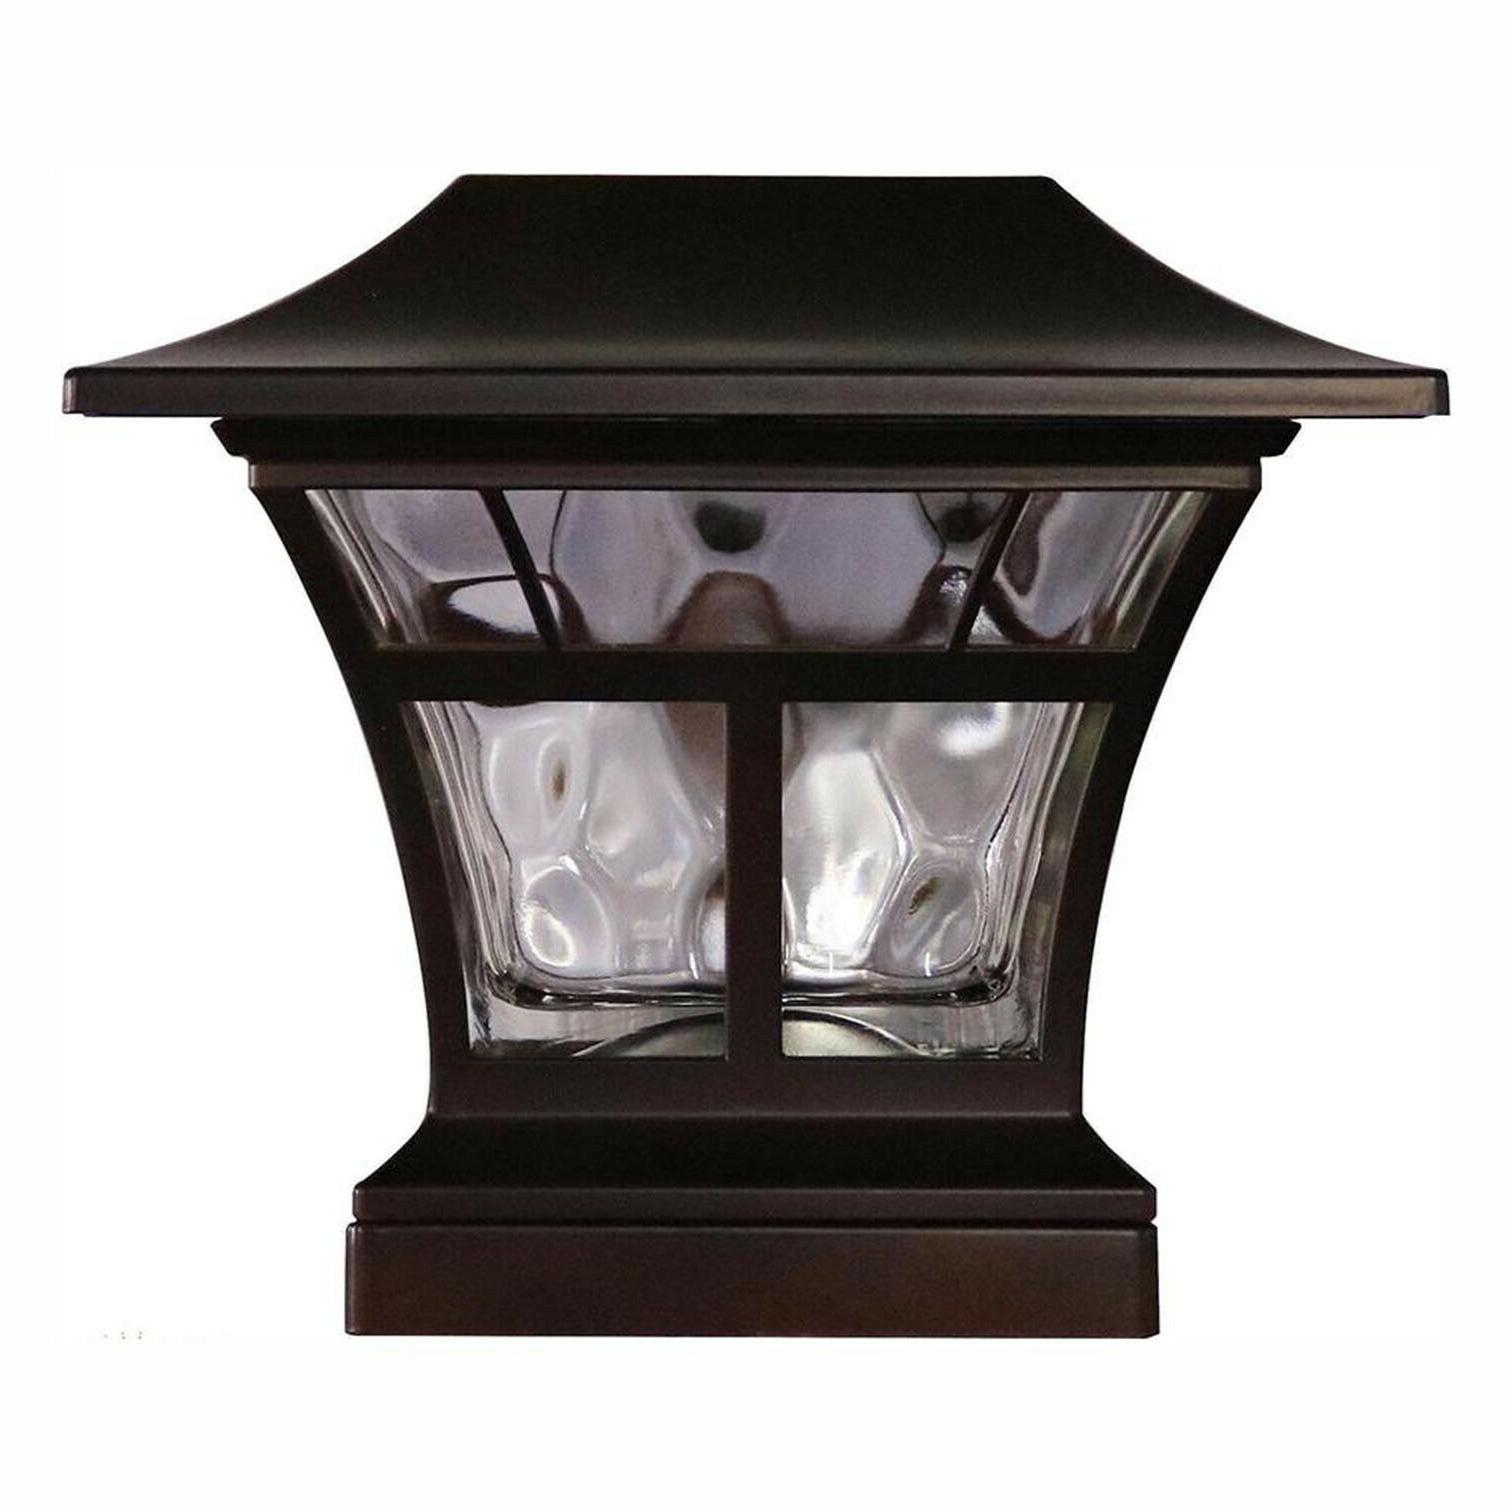 "2-PACK BRONZE DECK POST 4""x4"" 6""x6"" Outdoor Garden Lighting"